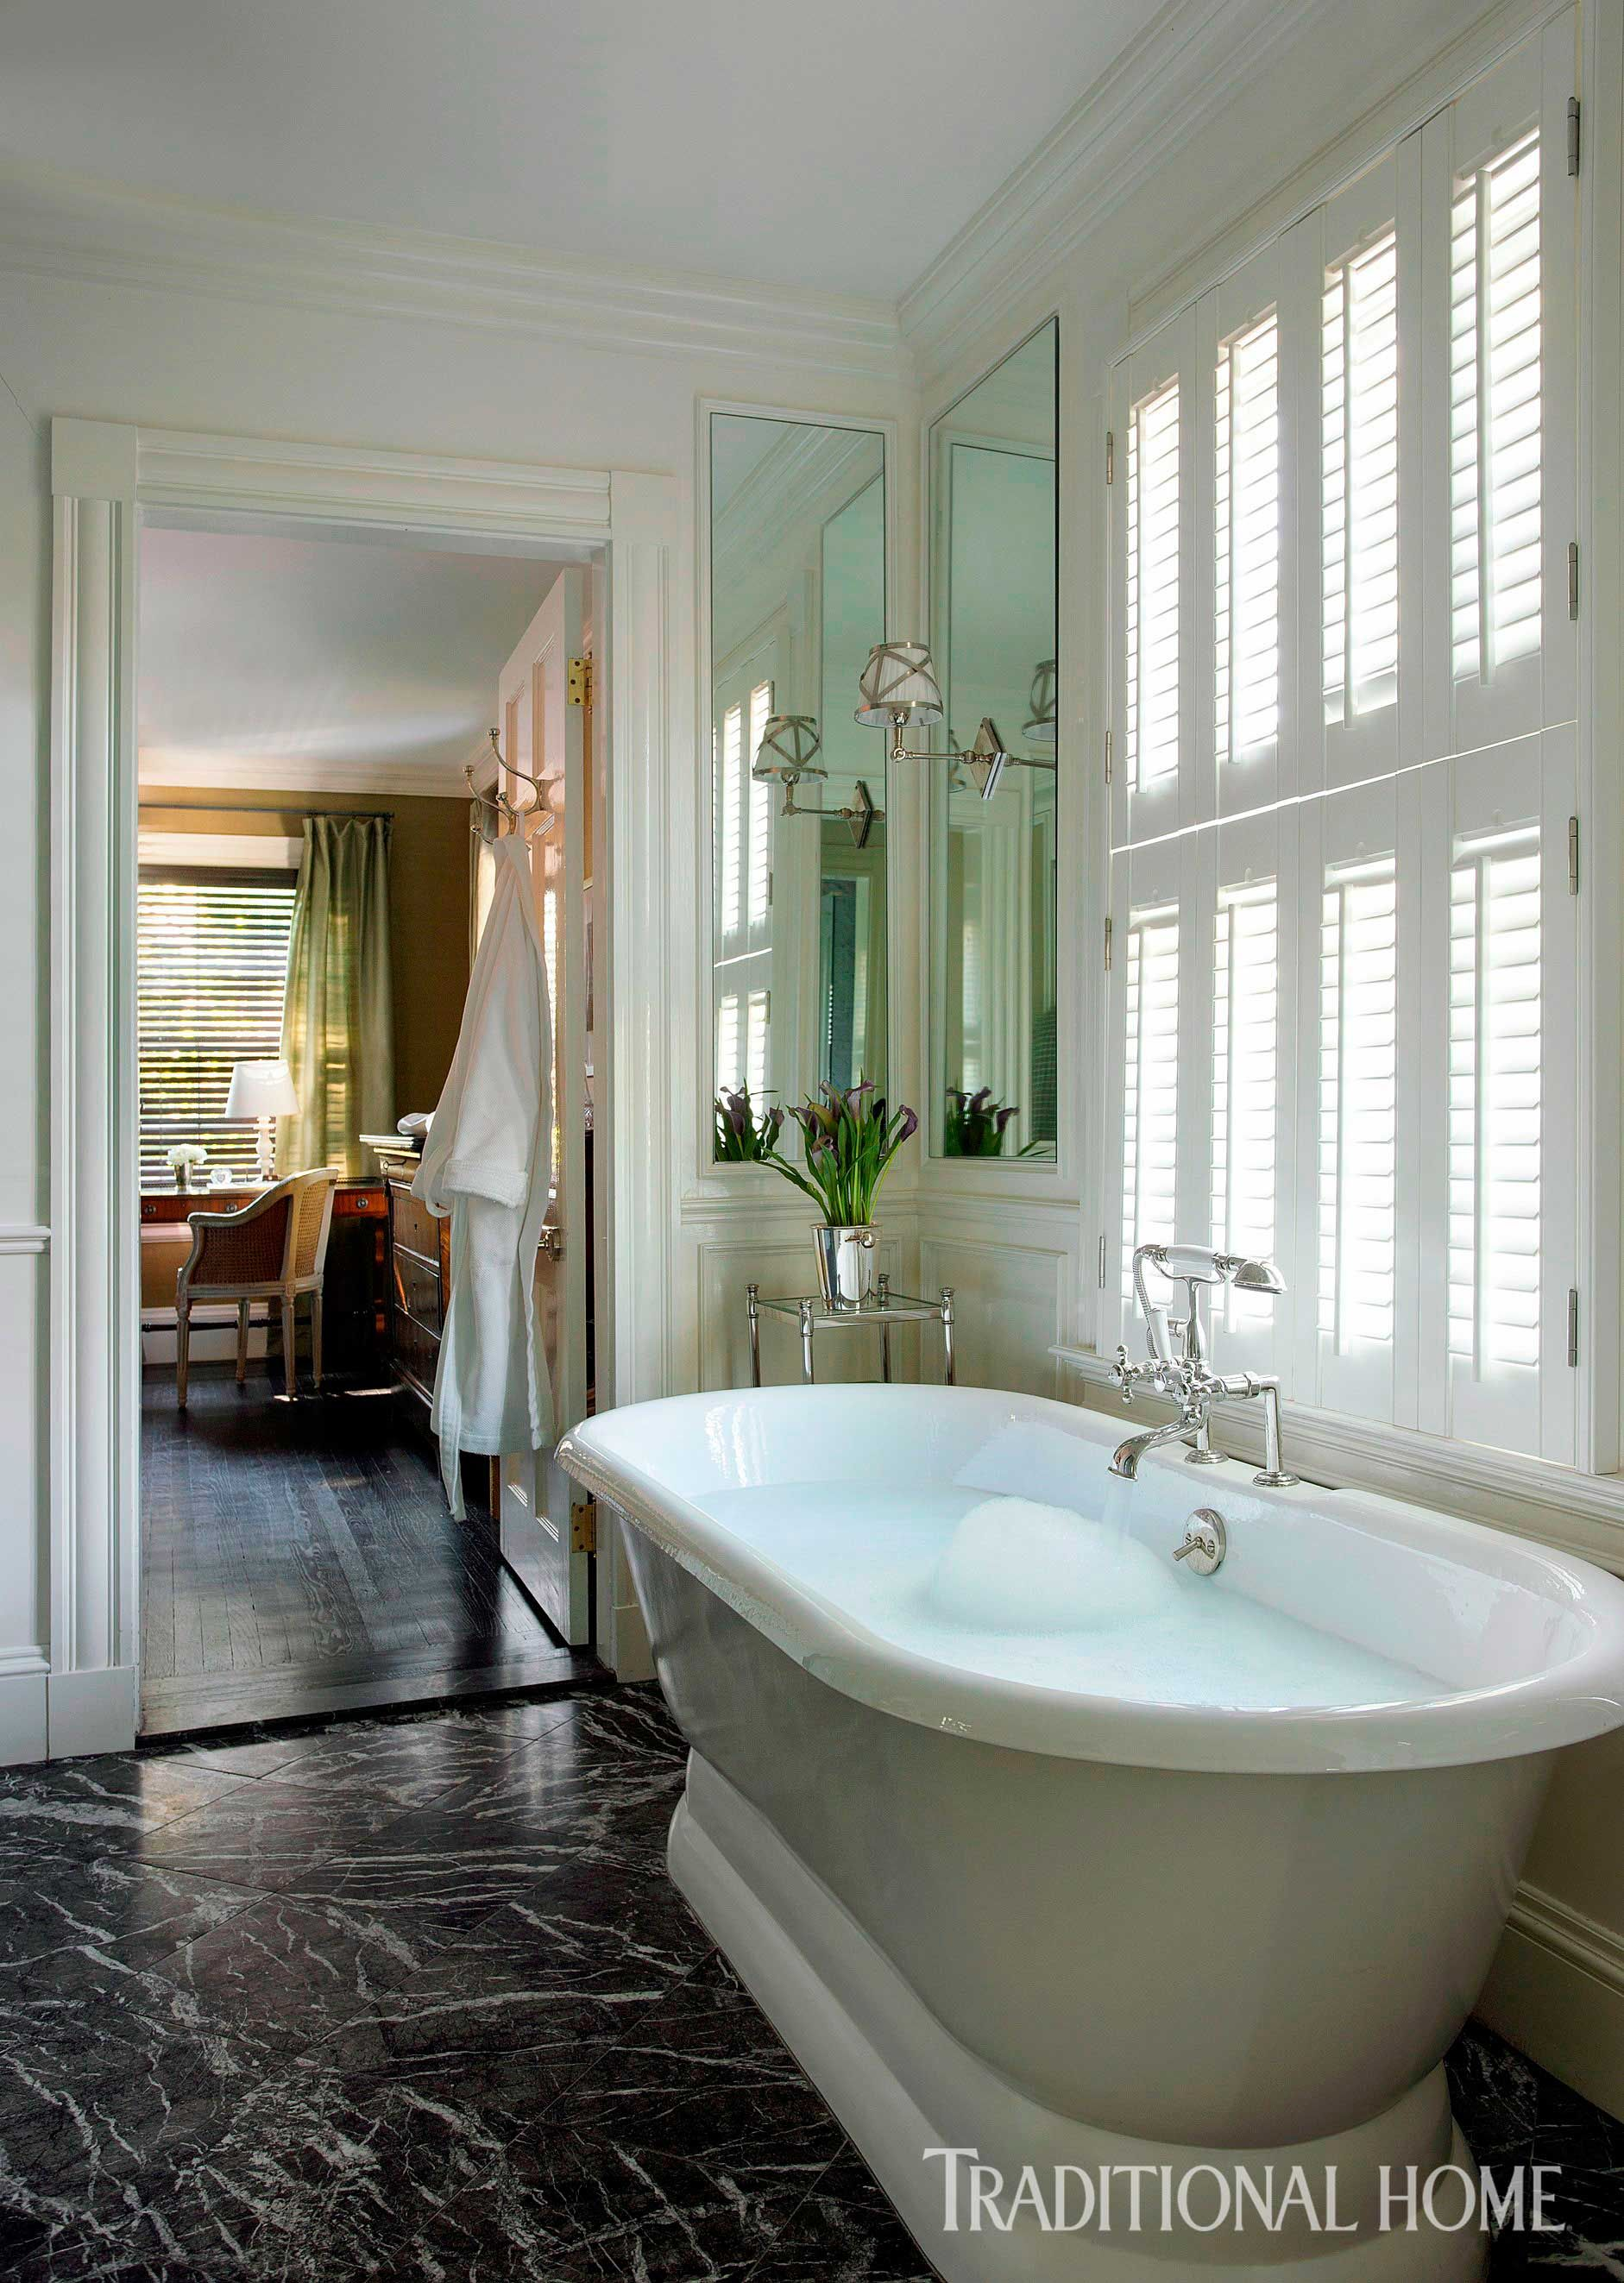 Explore Amazing Bathrooms Small Bathrooms and more